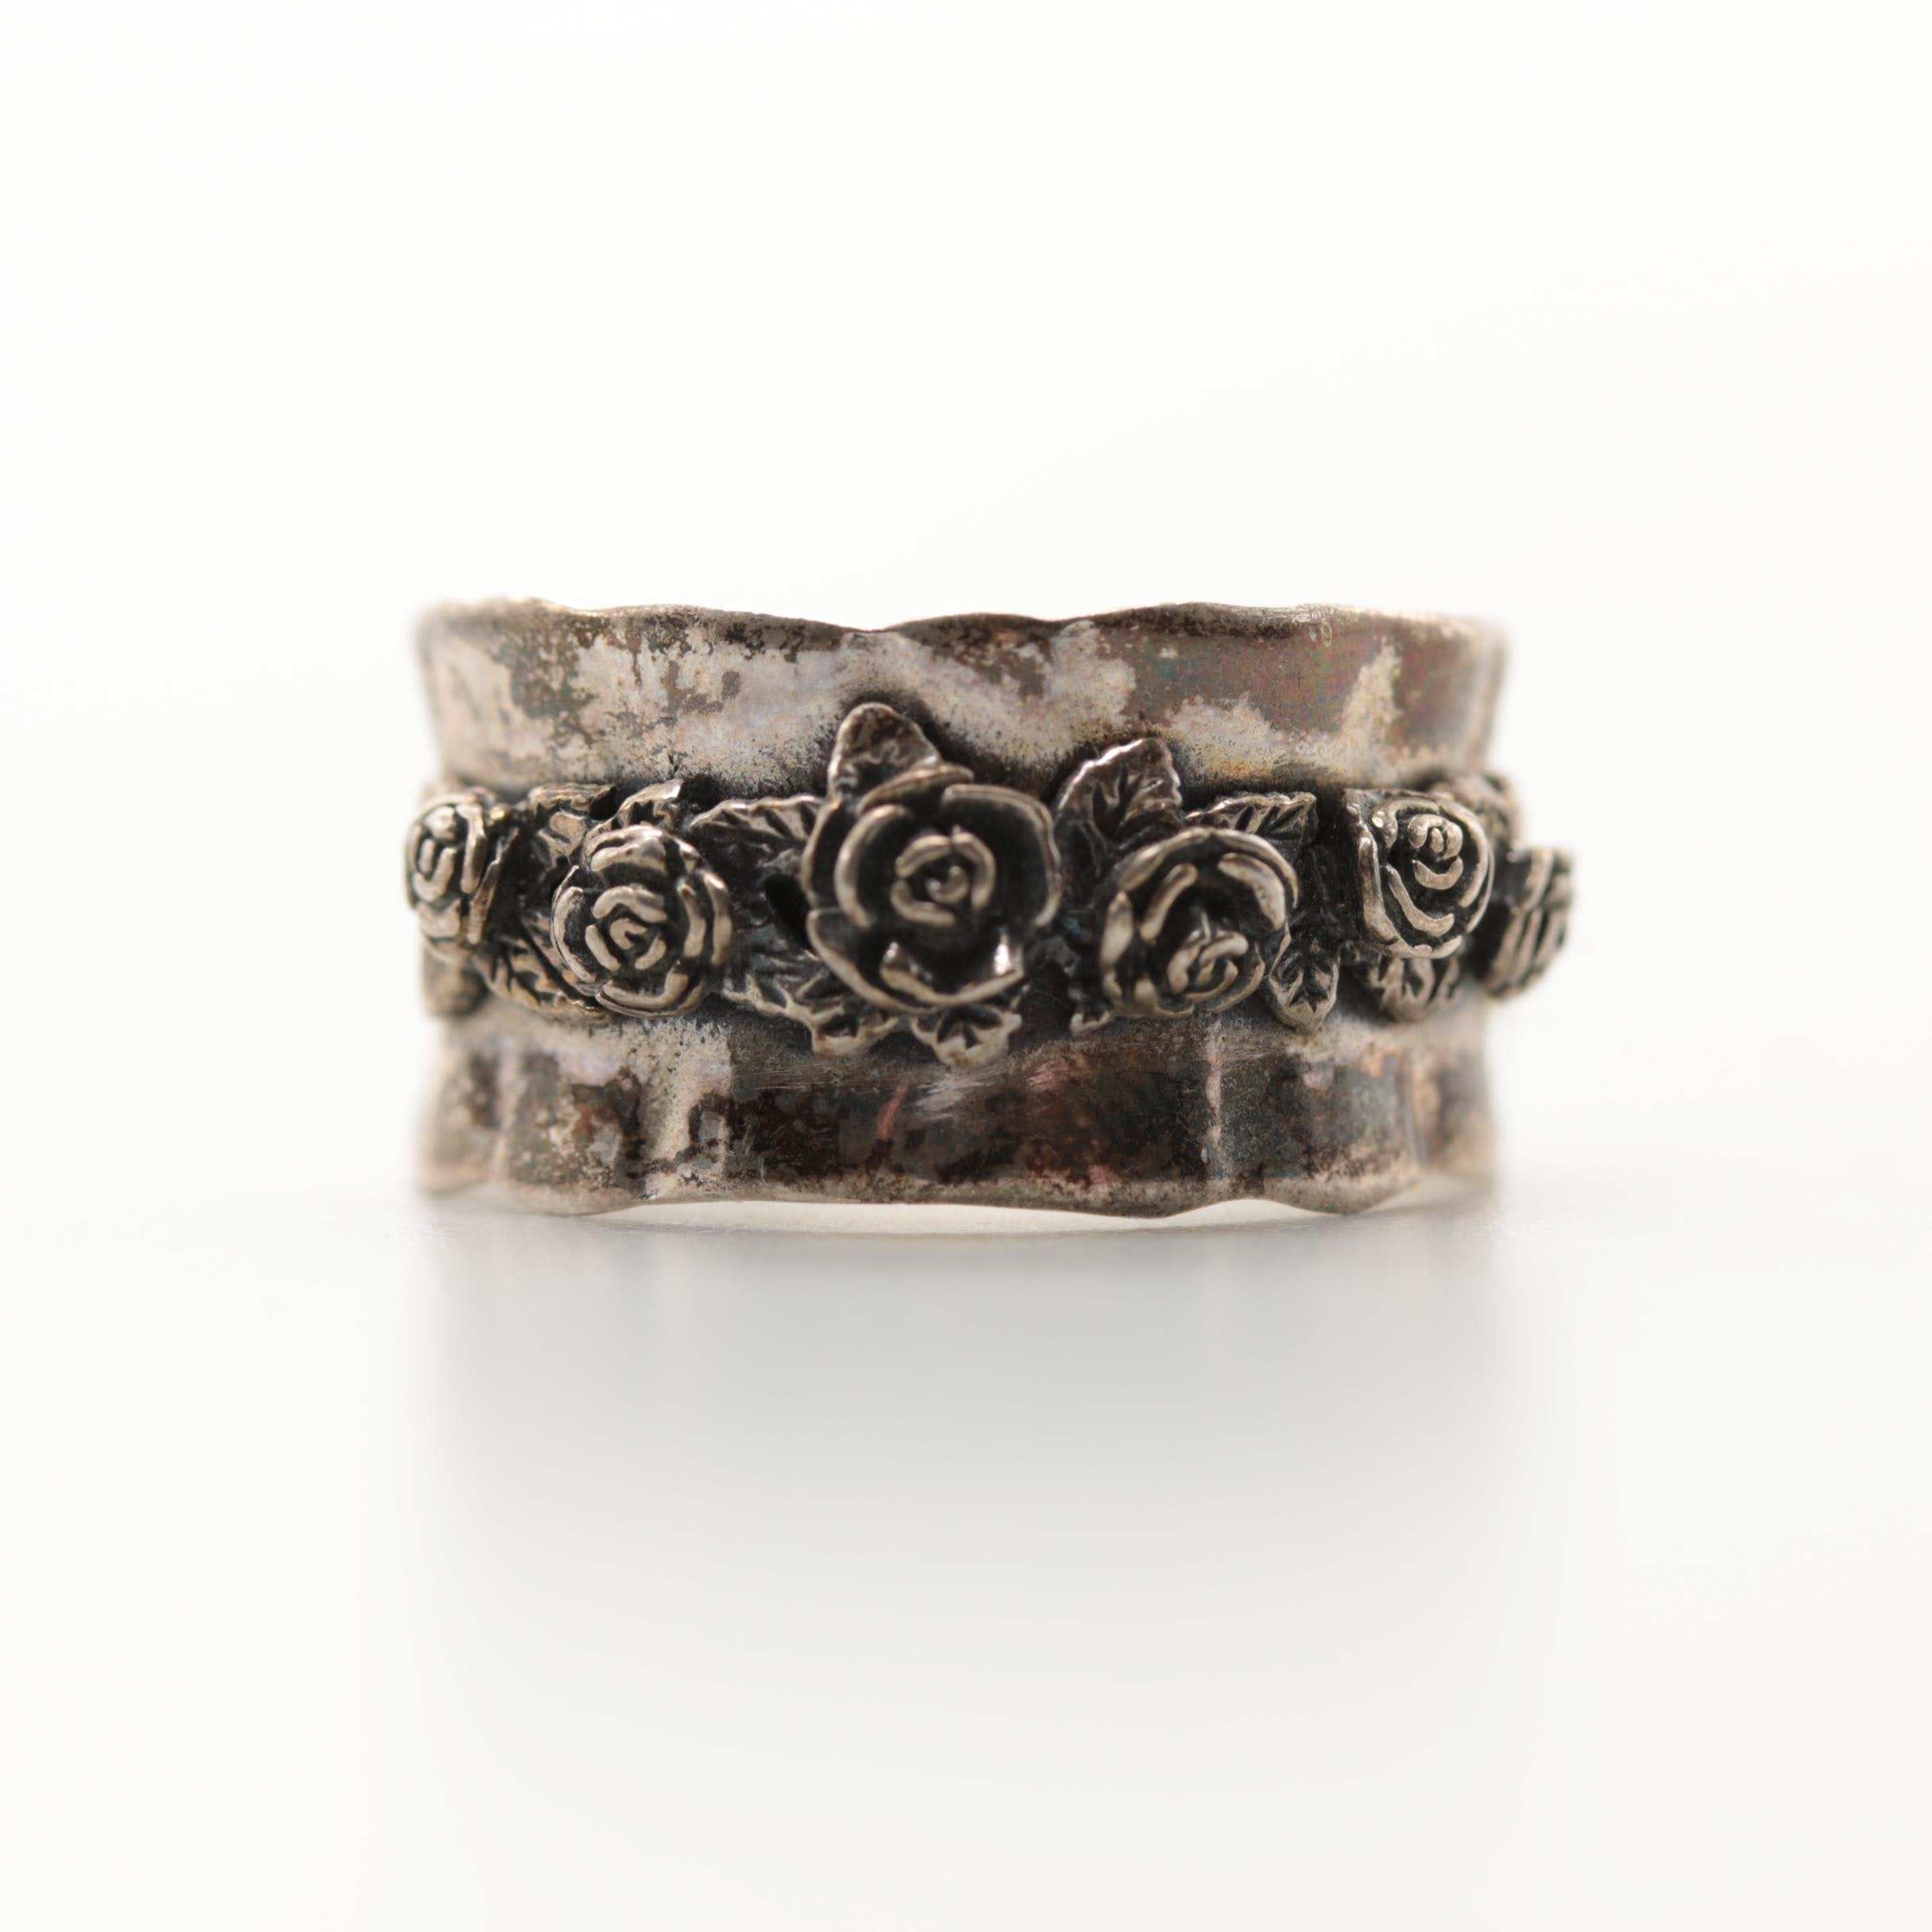 Israeli Made Sterling Silver Band with Floral Detailing